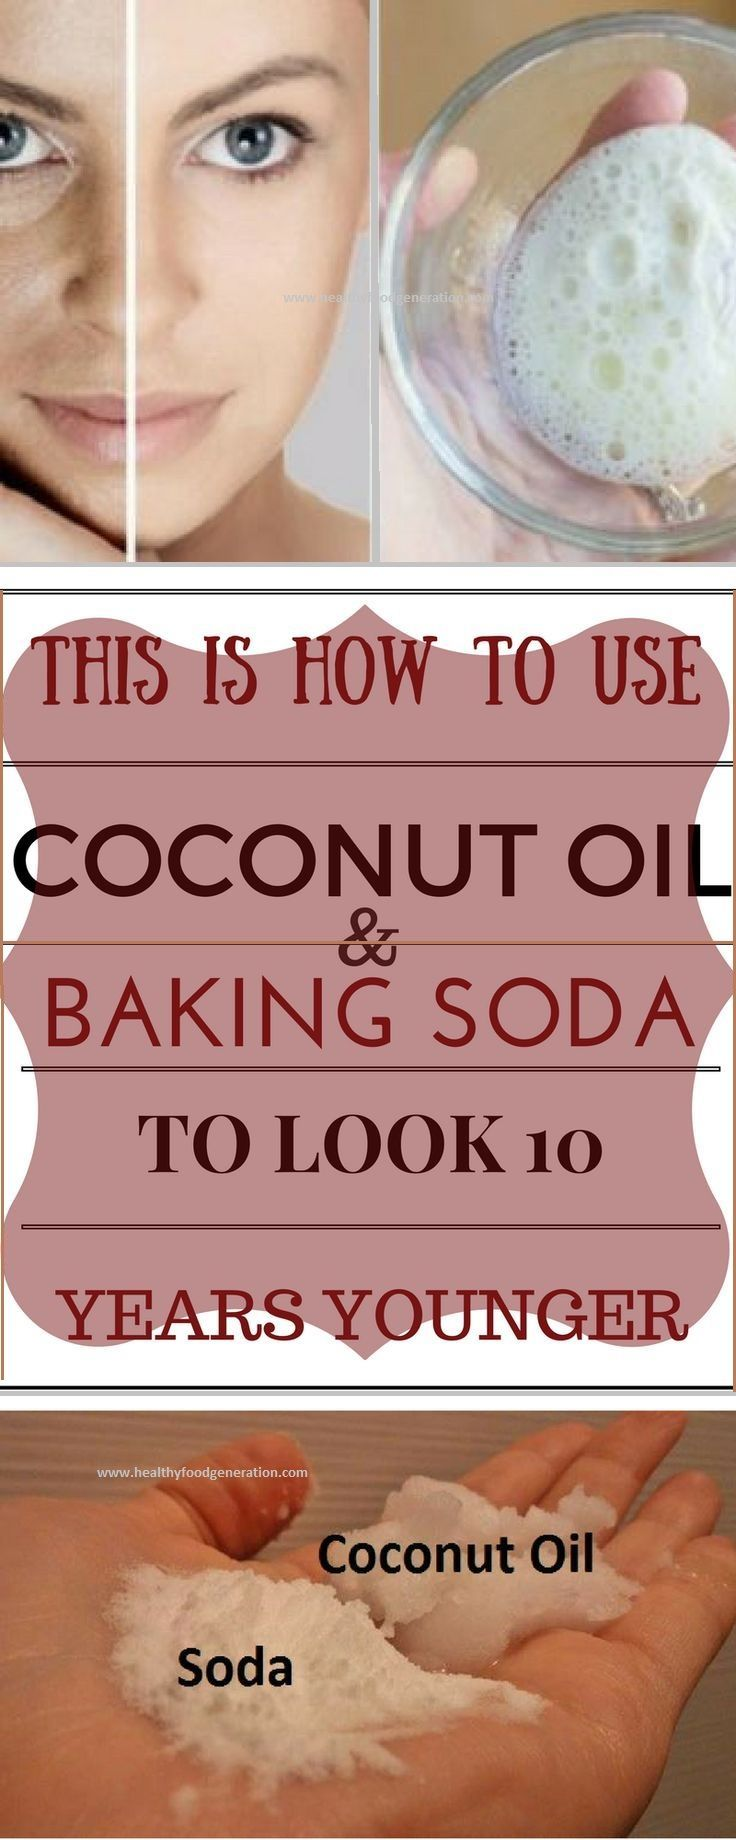 Coconut oil & Baking soda